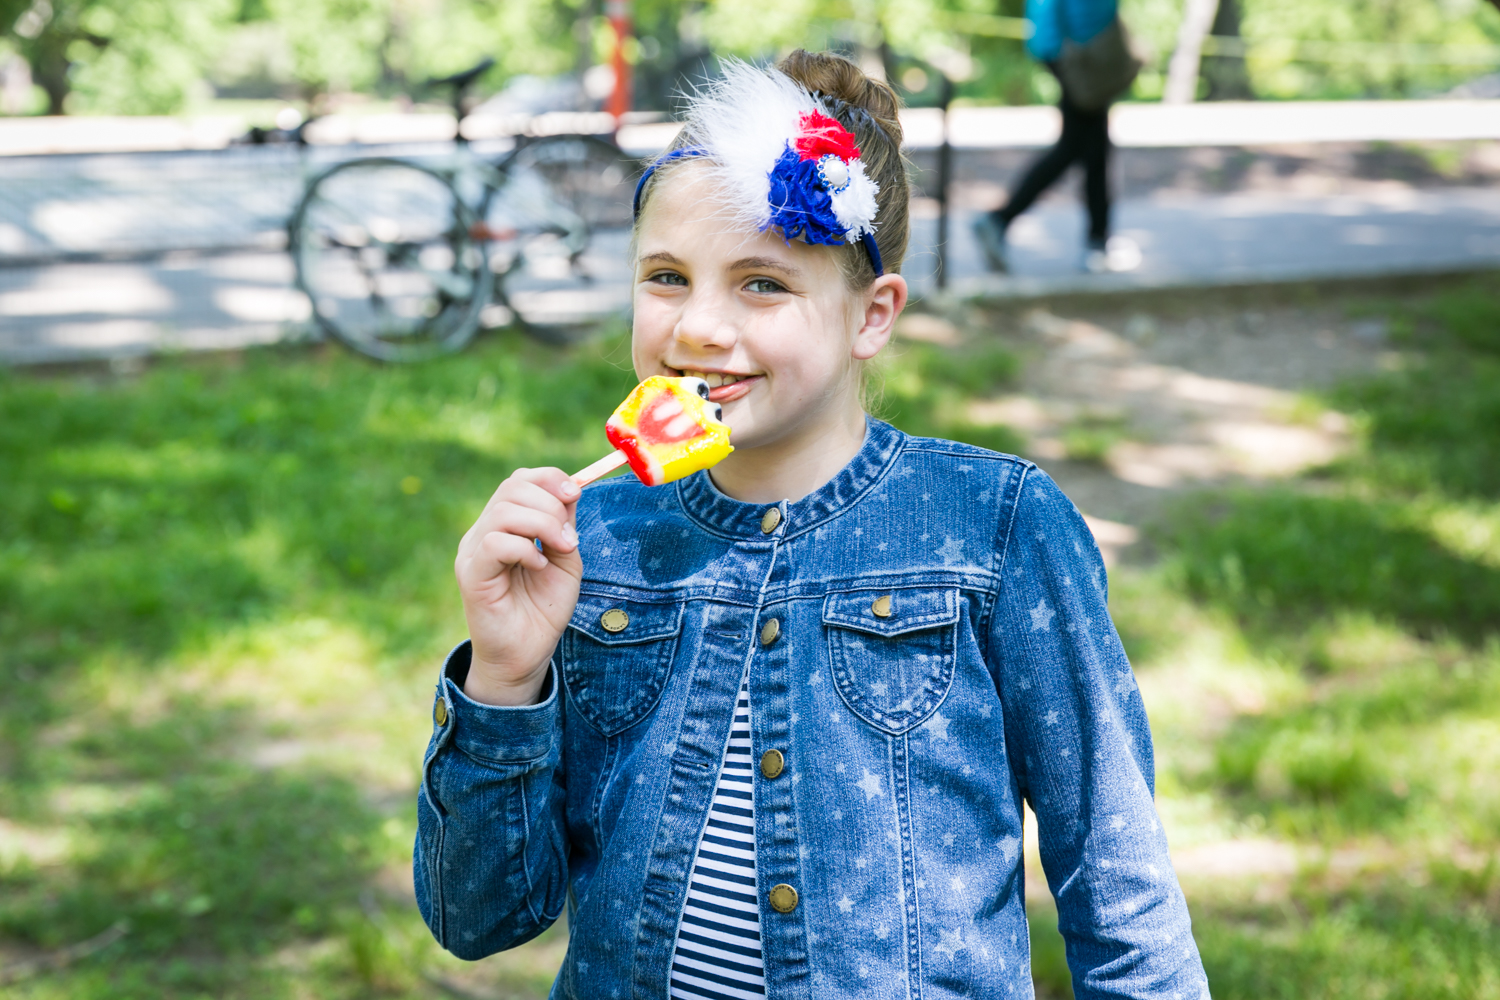 Girl eating ice cream in Central Park